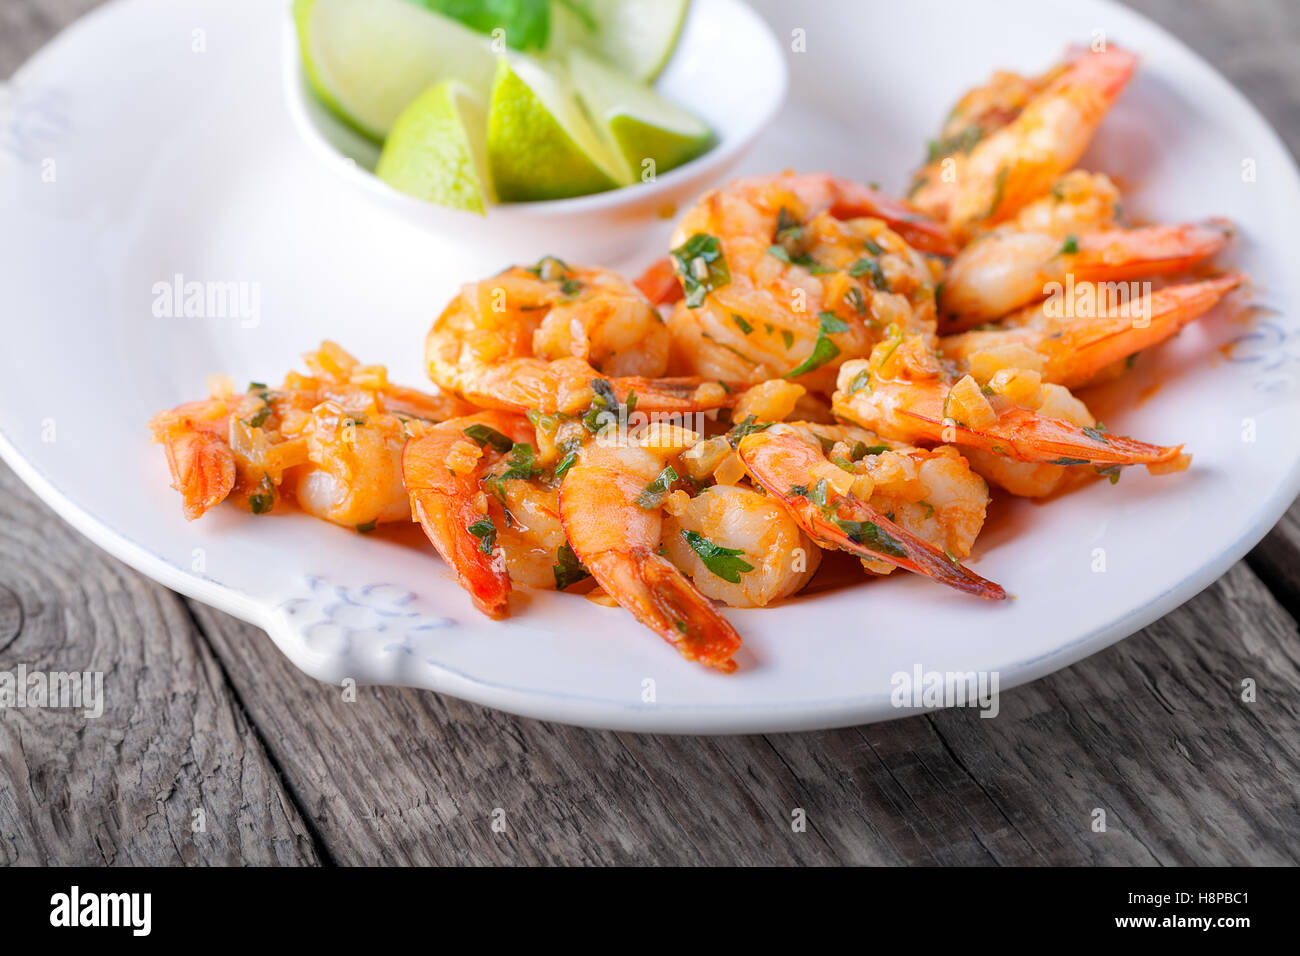 Fried Prawns served on the plate with lime - Stock Image